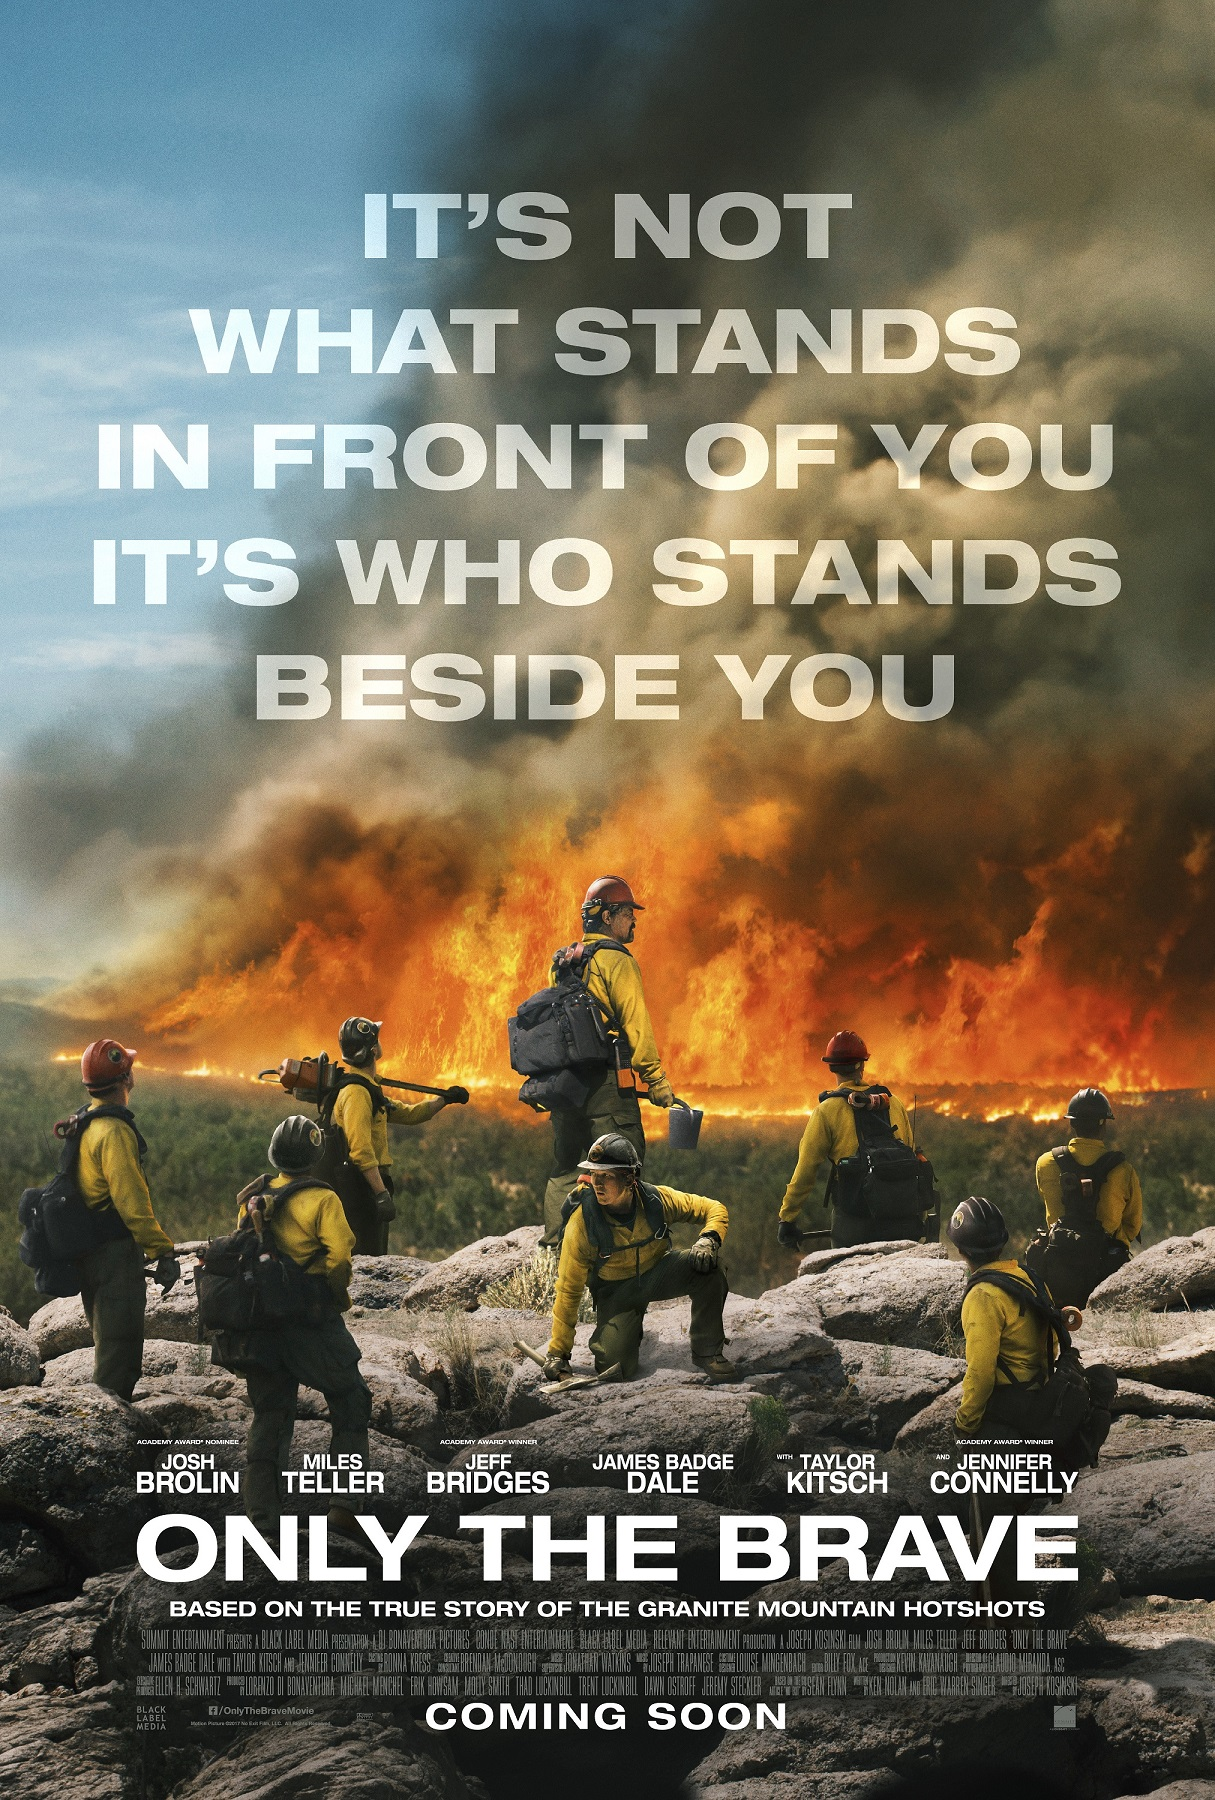 Only The Brave - poster art